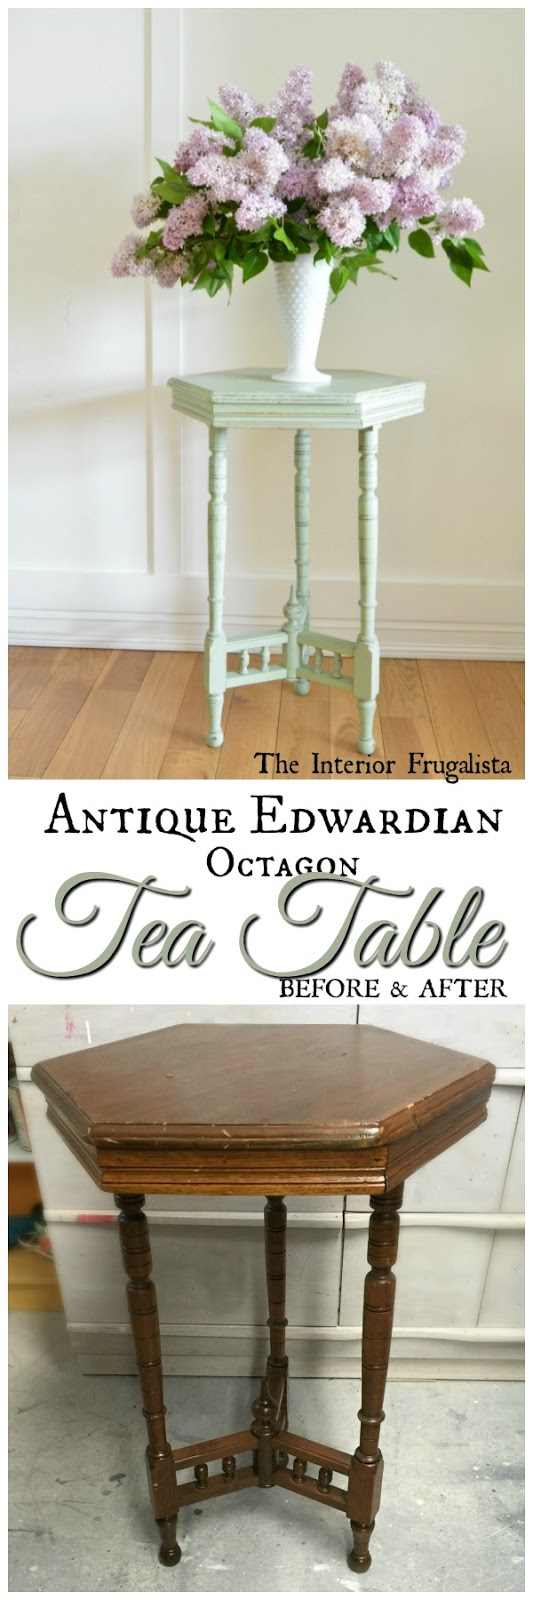 Antique Edwardian Tea Table Before and After